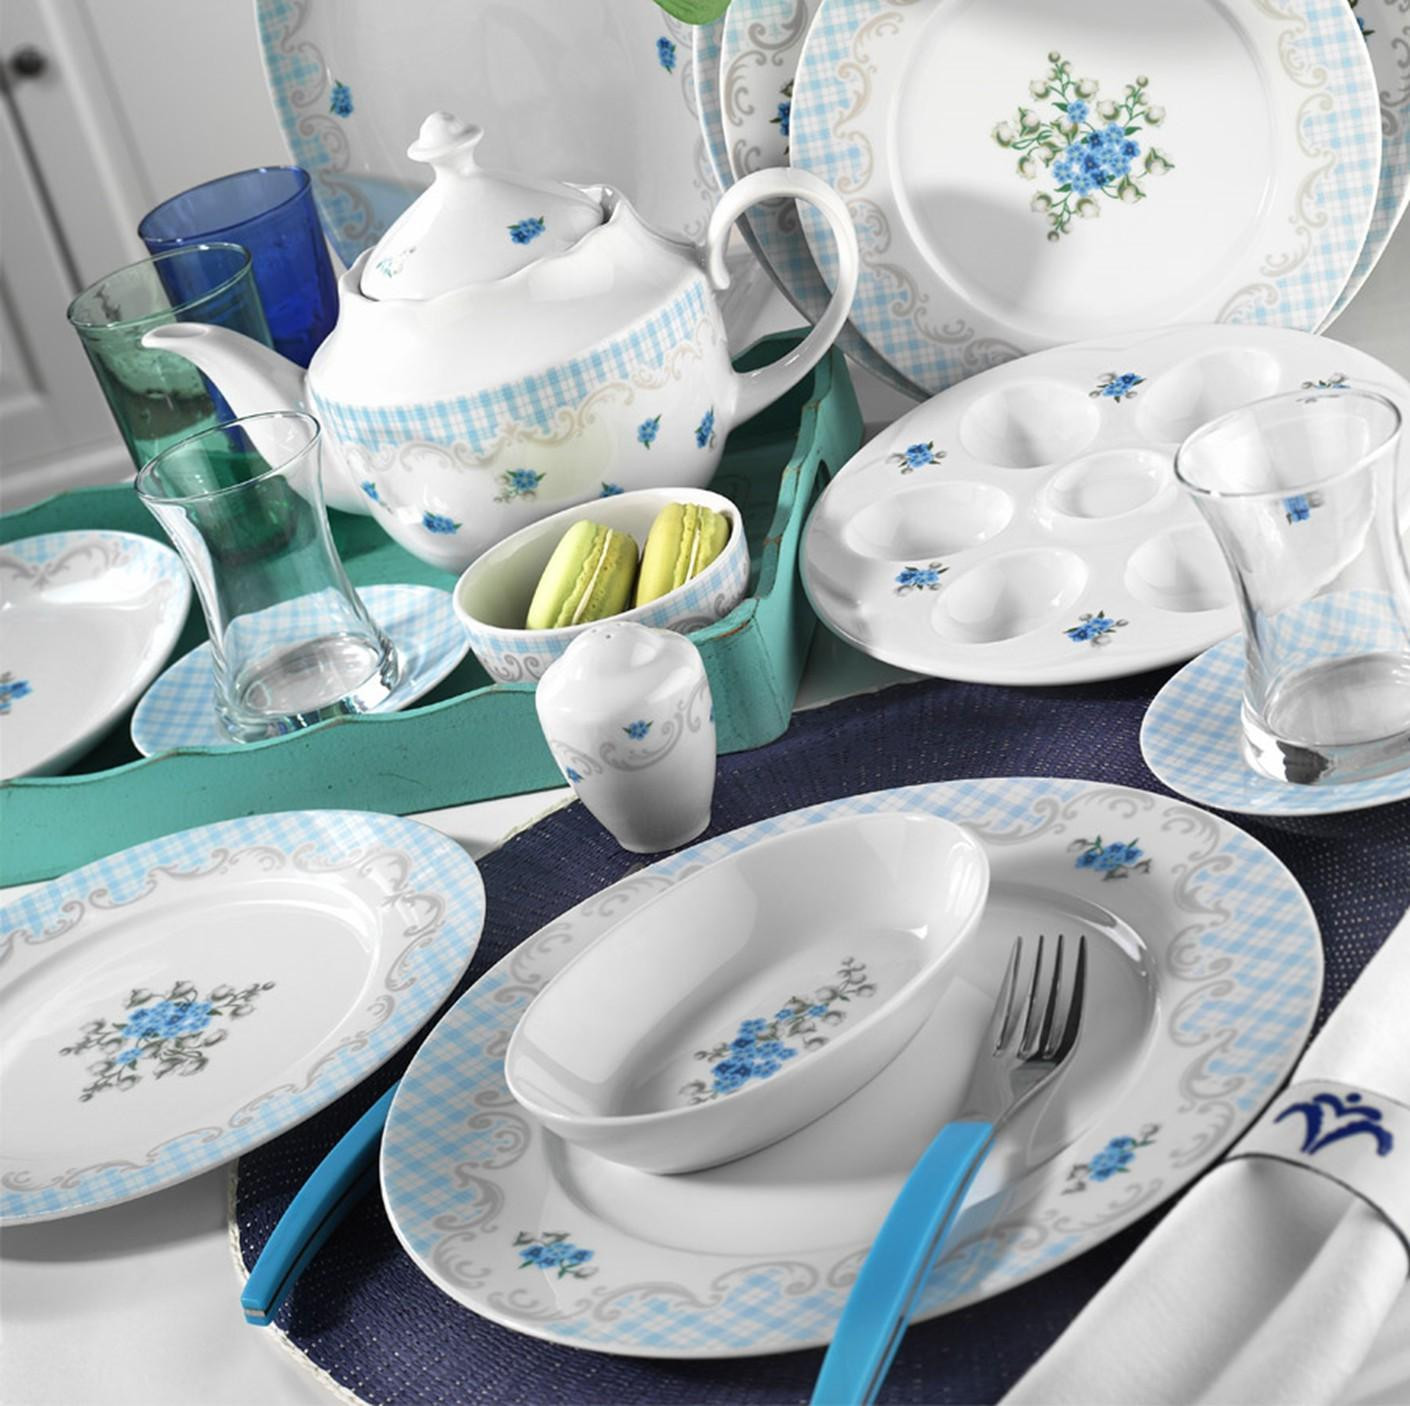 sc 1 th 224 & Kutahya Porselen LEONGBERG 43 Pieces 8537 Patterned Dinnerware Set